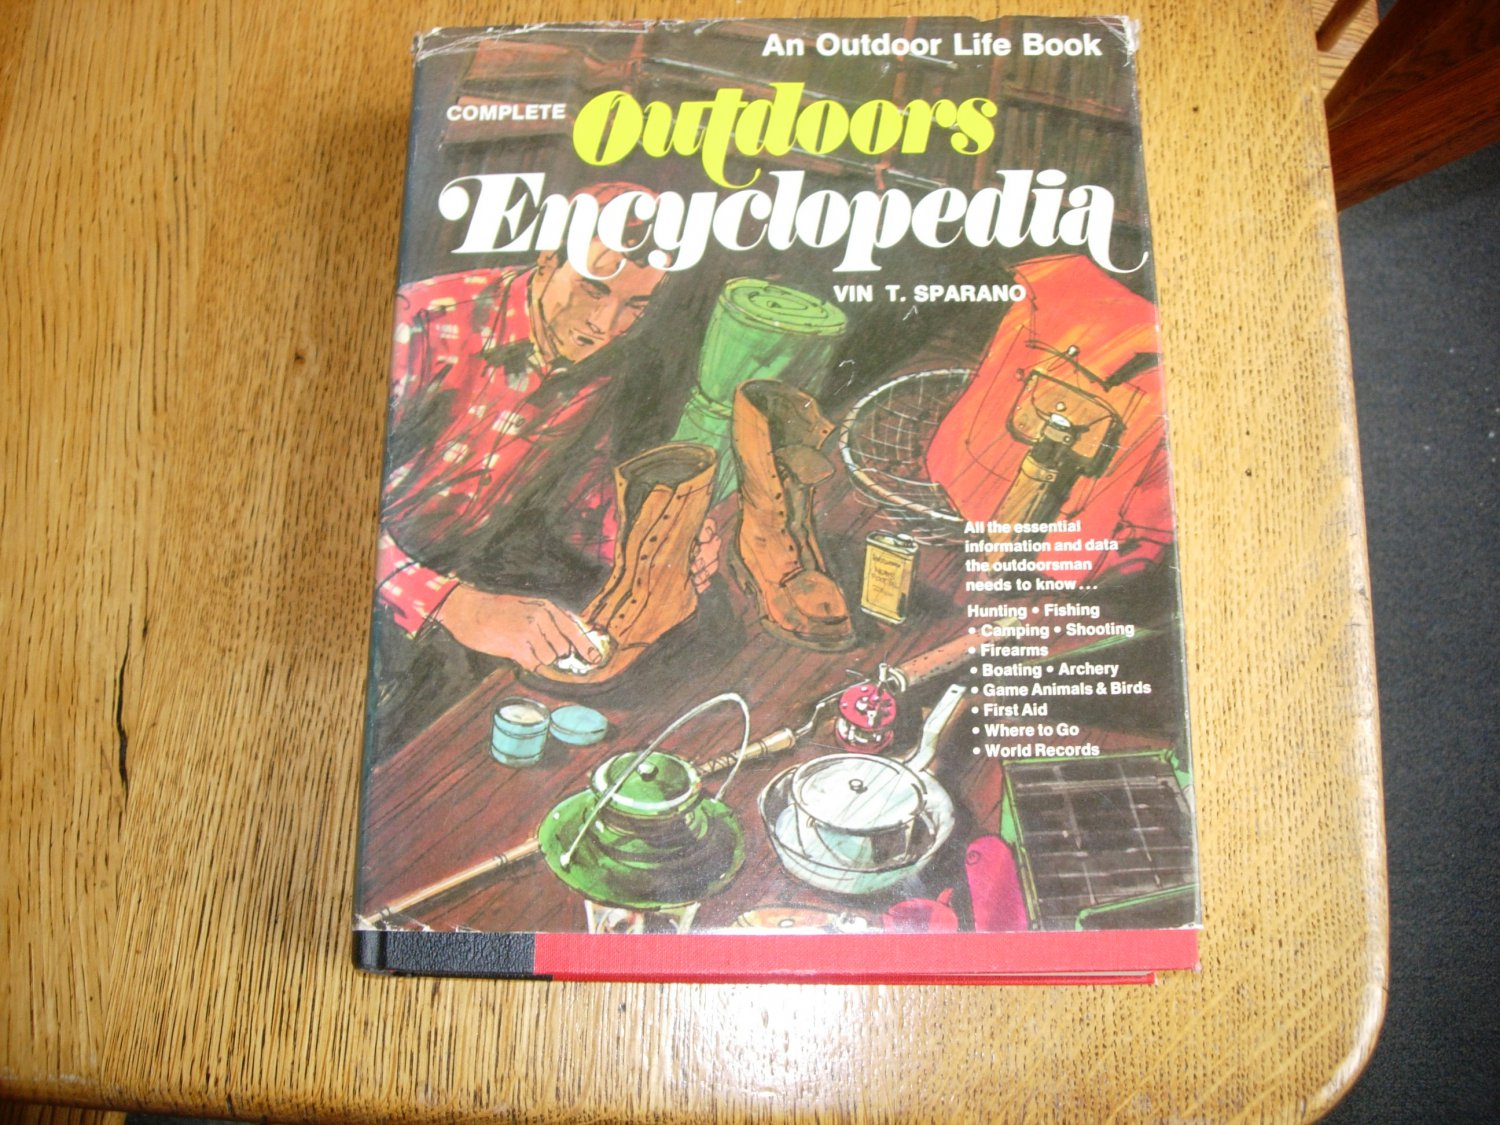 Complete Outdoors Encyclopedia by Vin T Sparano-An Outdoor Life Book